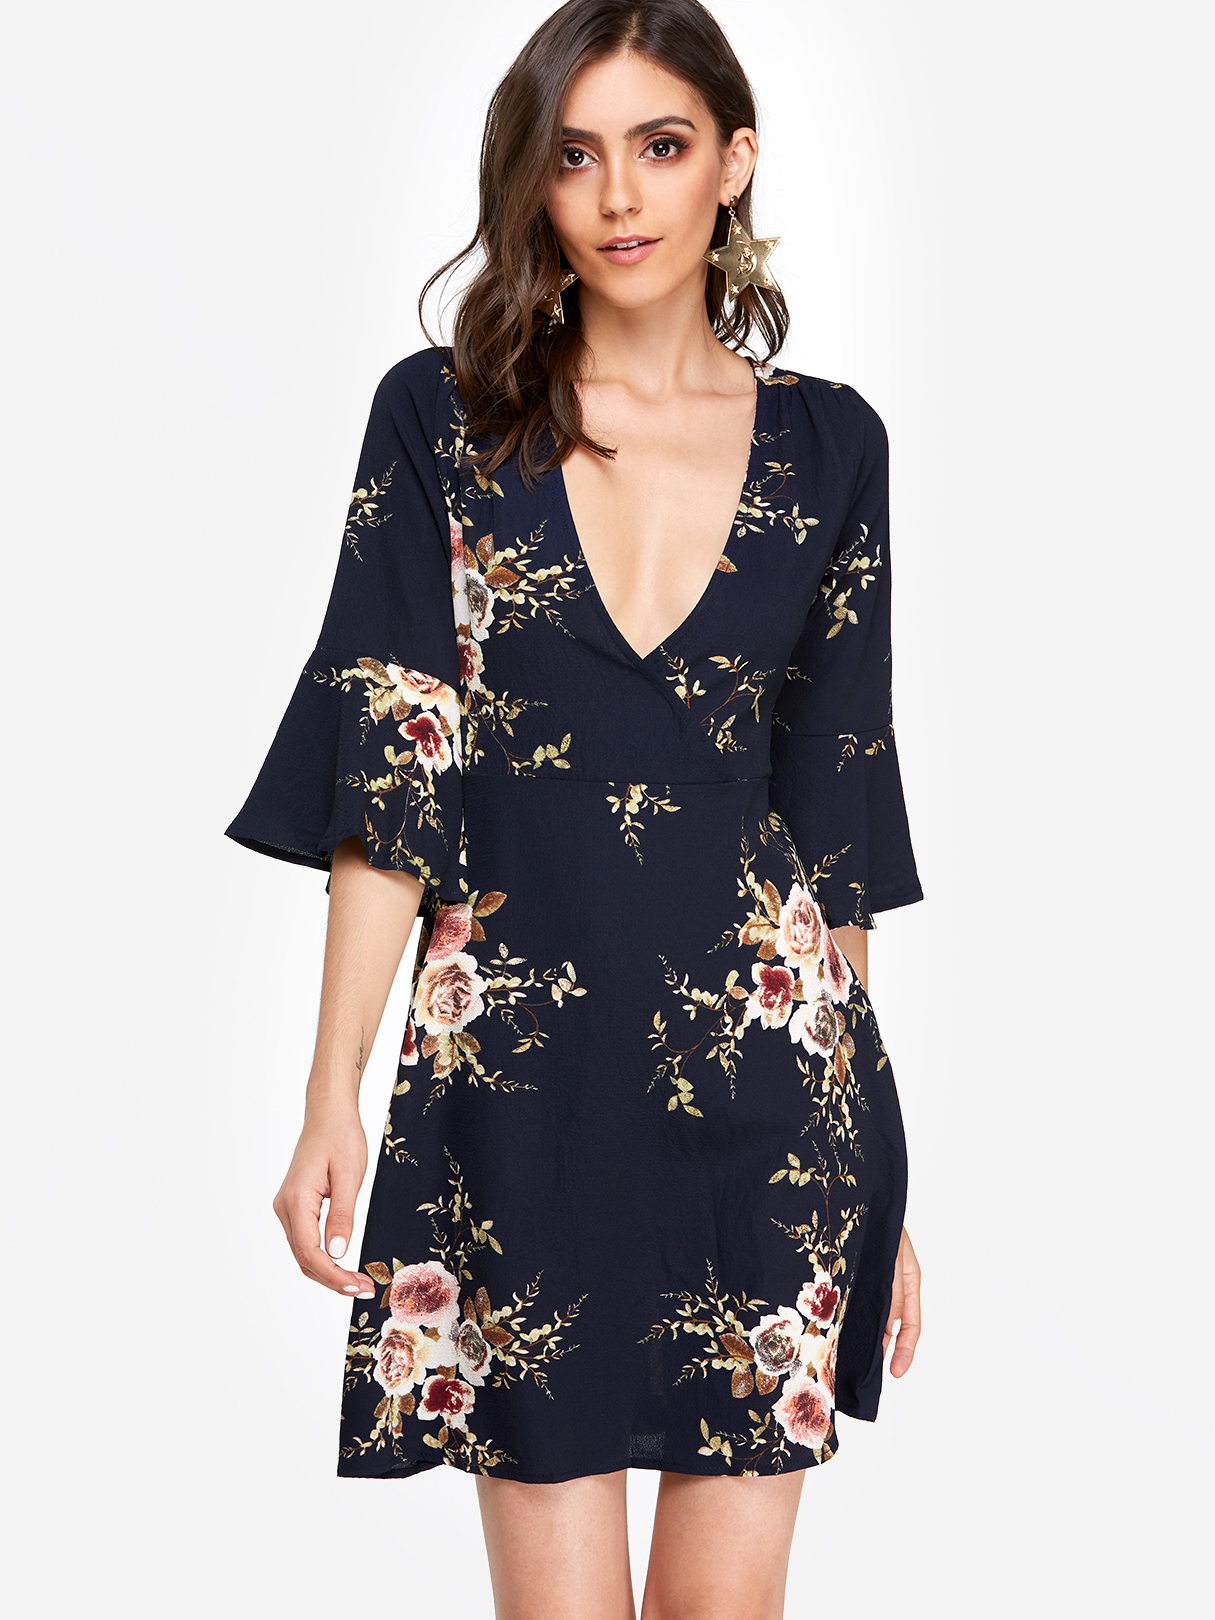 Navy Random Floral Print Crossed Collar Bell Sleeves Dress with Zip Design